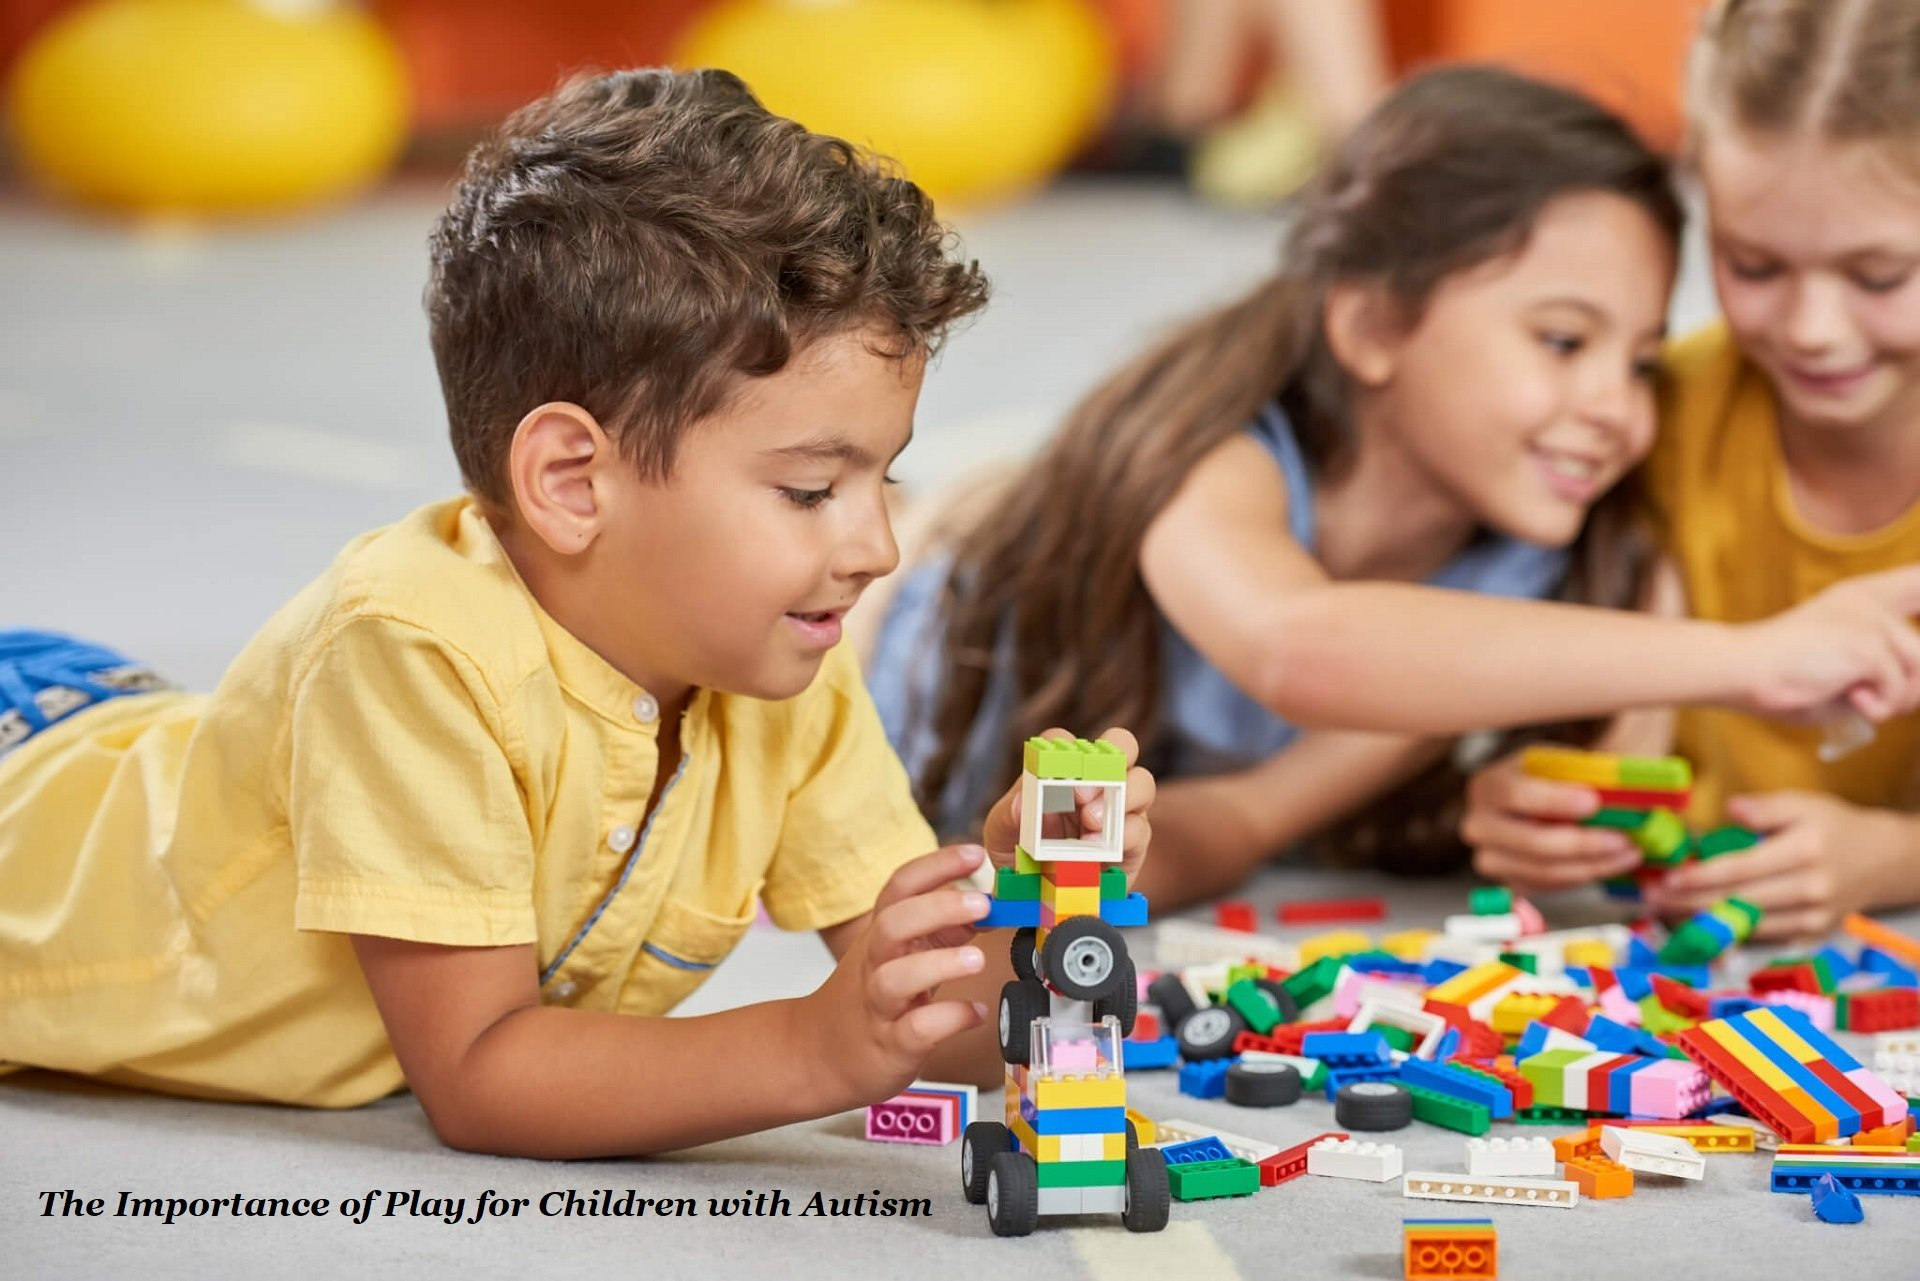 Lego Kids-Playing-Block-Toys-In-Pla-350958596 with text